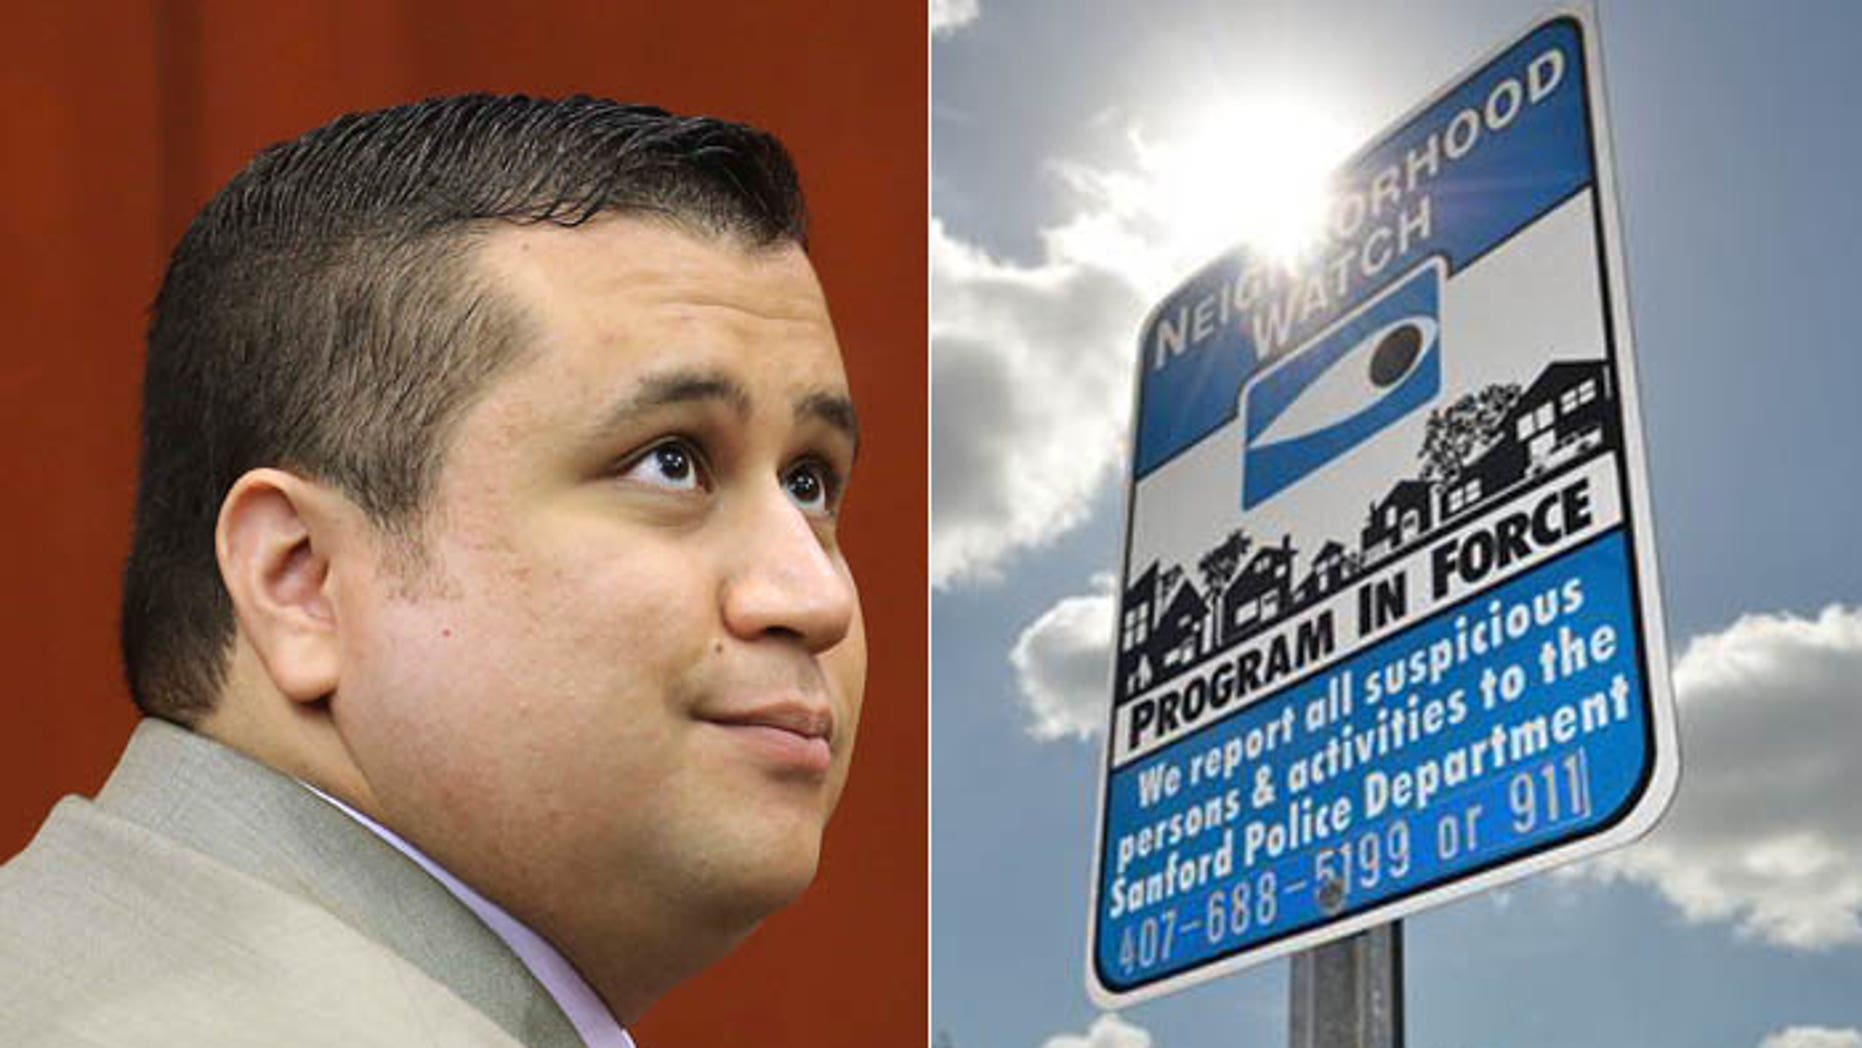 Even though a jury acquitted George Zimmerman, his community association paid a large settlement to the family of Trayvon Martin. (AP)